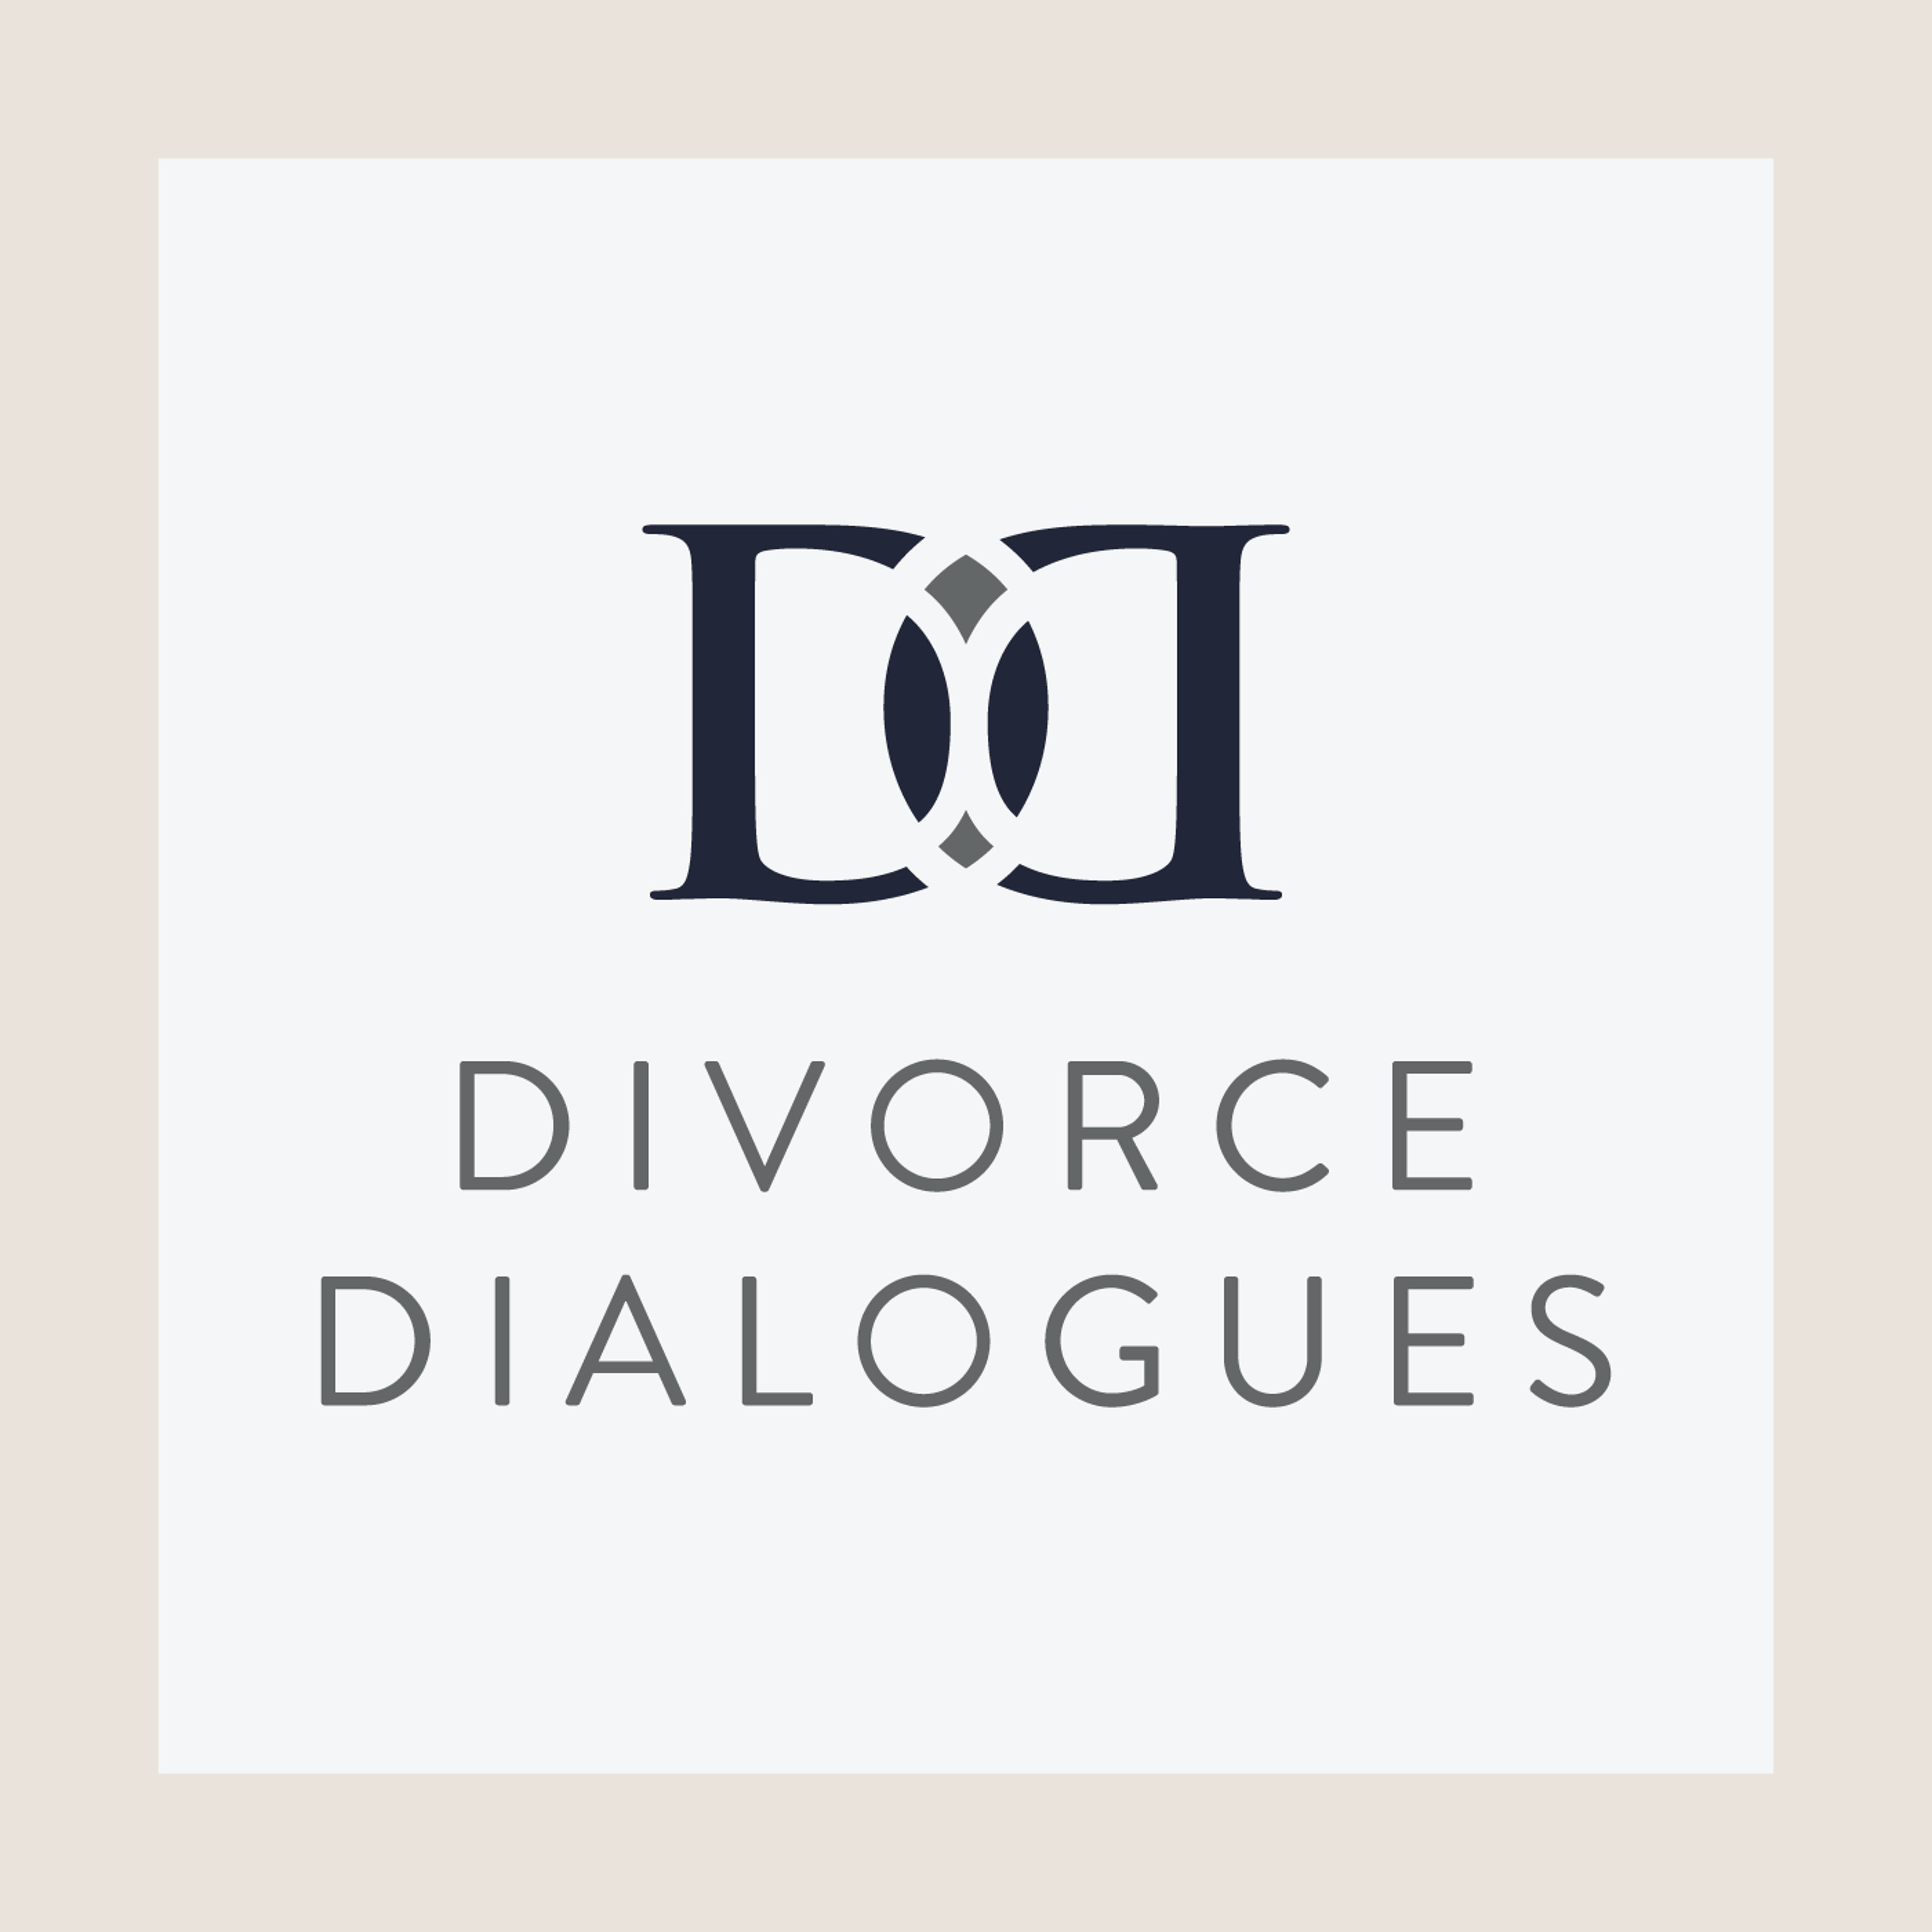 Divorce Dialogues - Get Closure with Your Ex & Divorce with Dignity with Dr. Bonnie Eaker-Weil